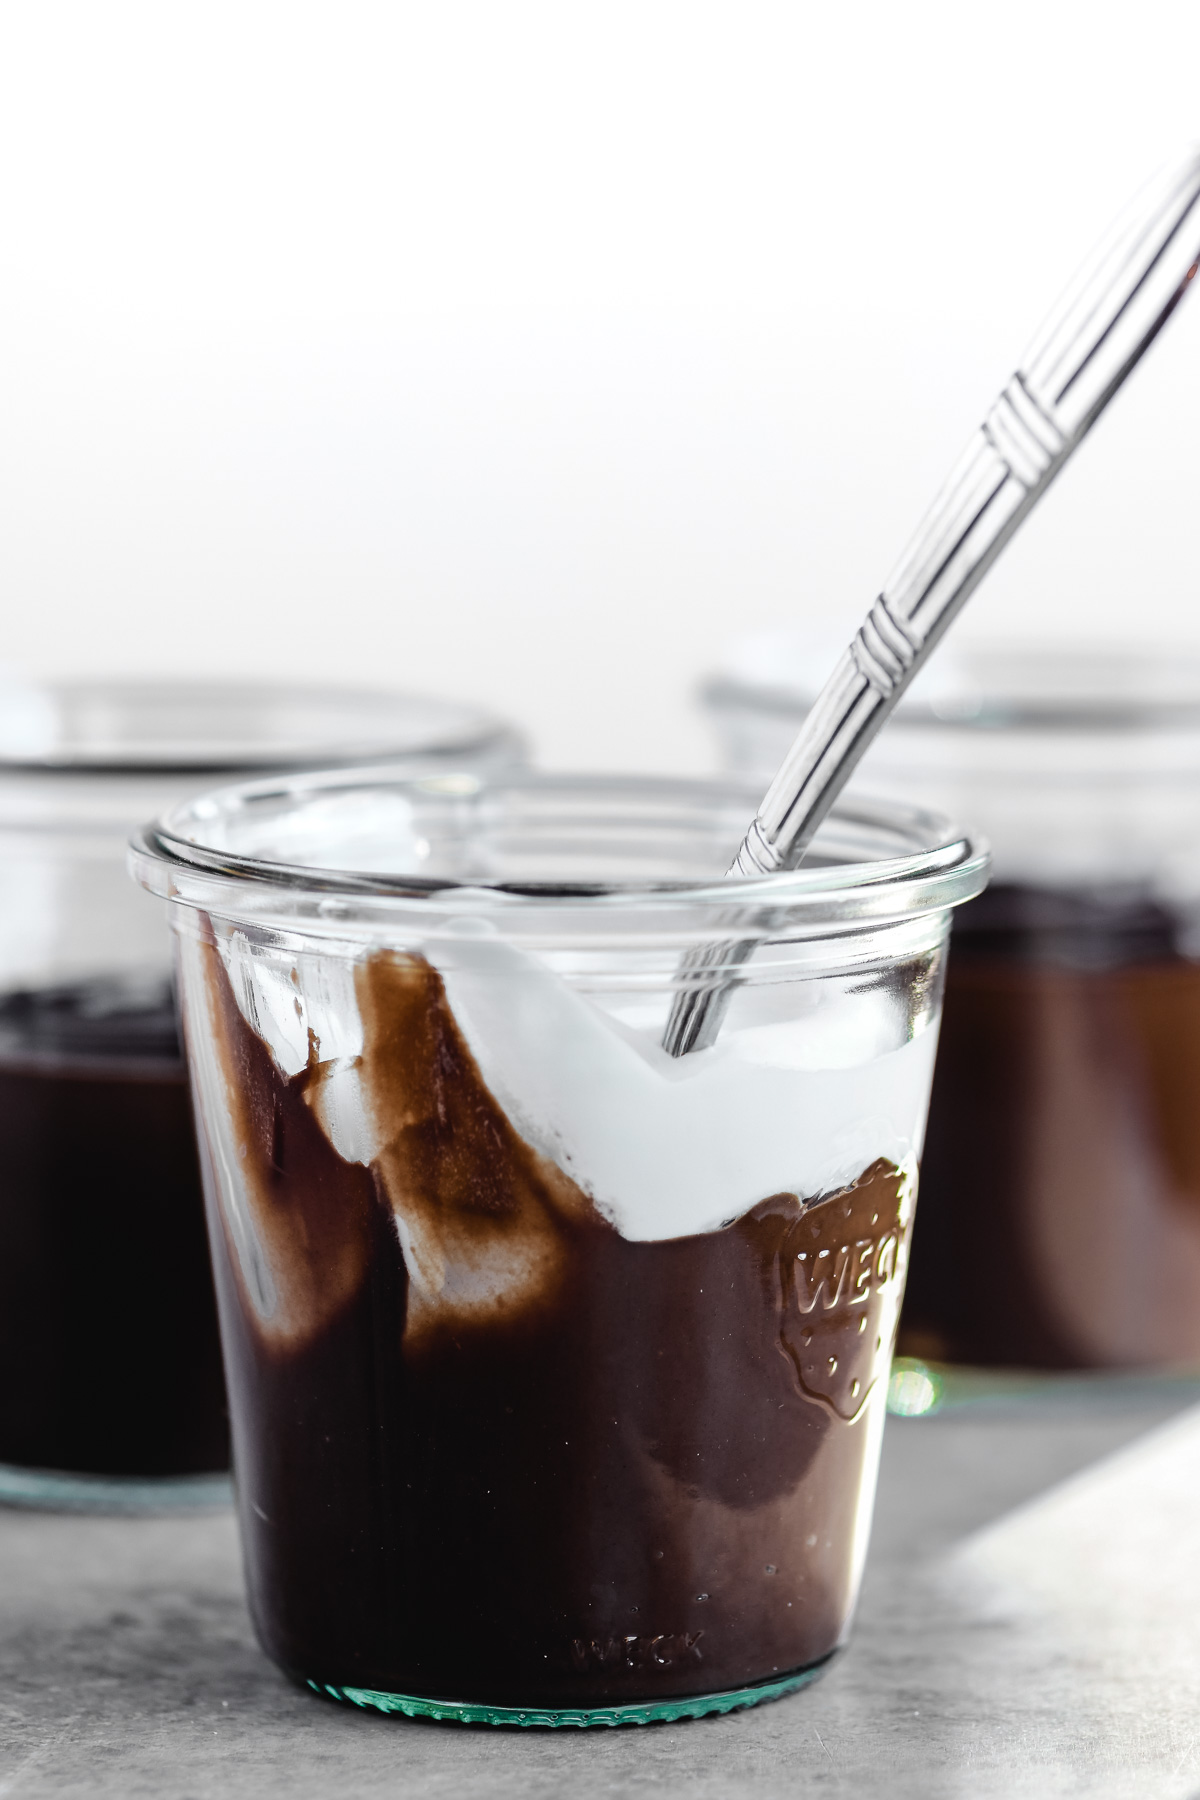 chocolate pudding in a glass jar with whipped cream and spoon